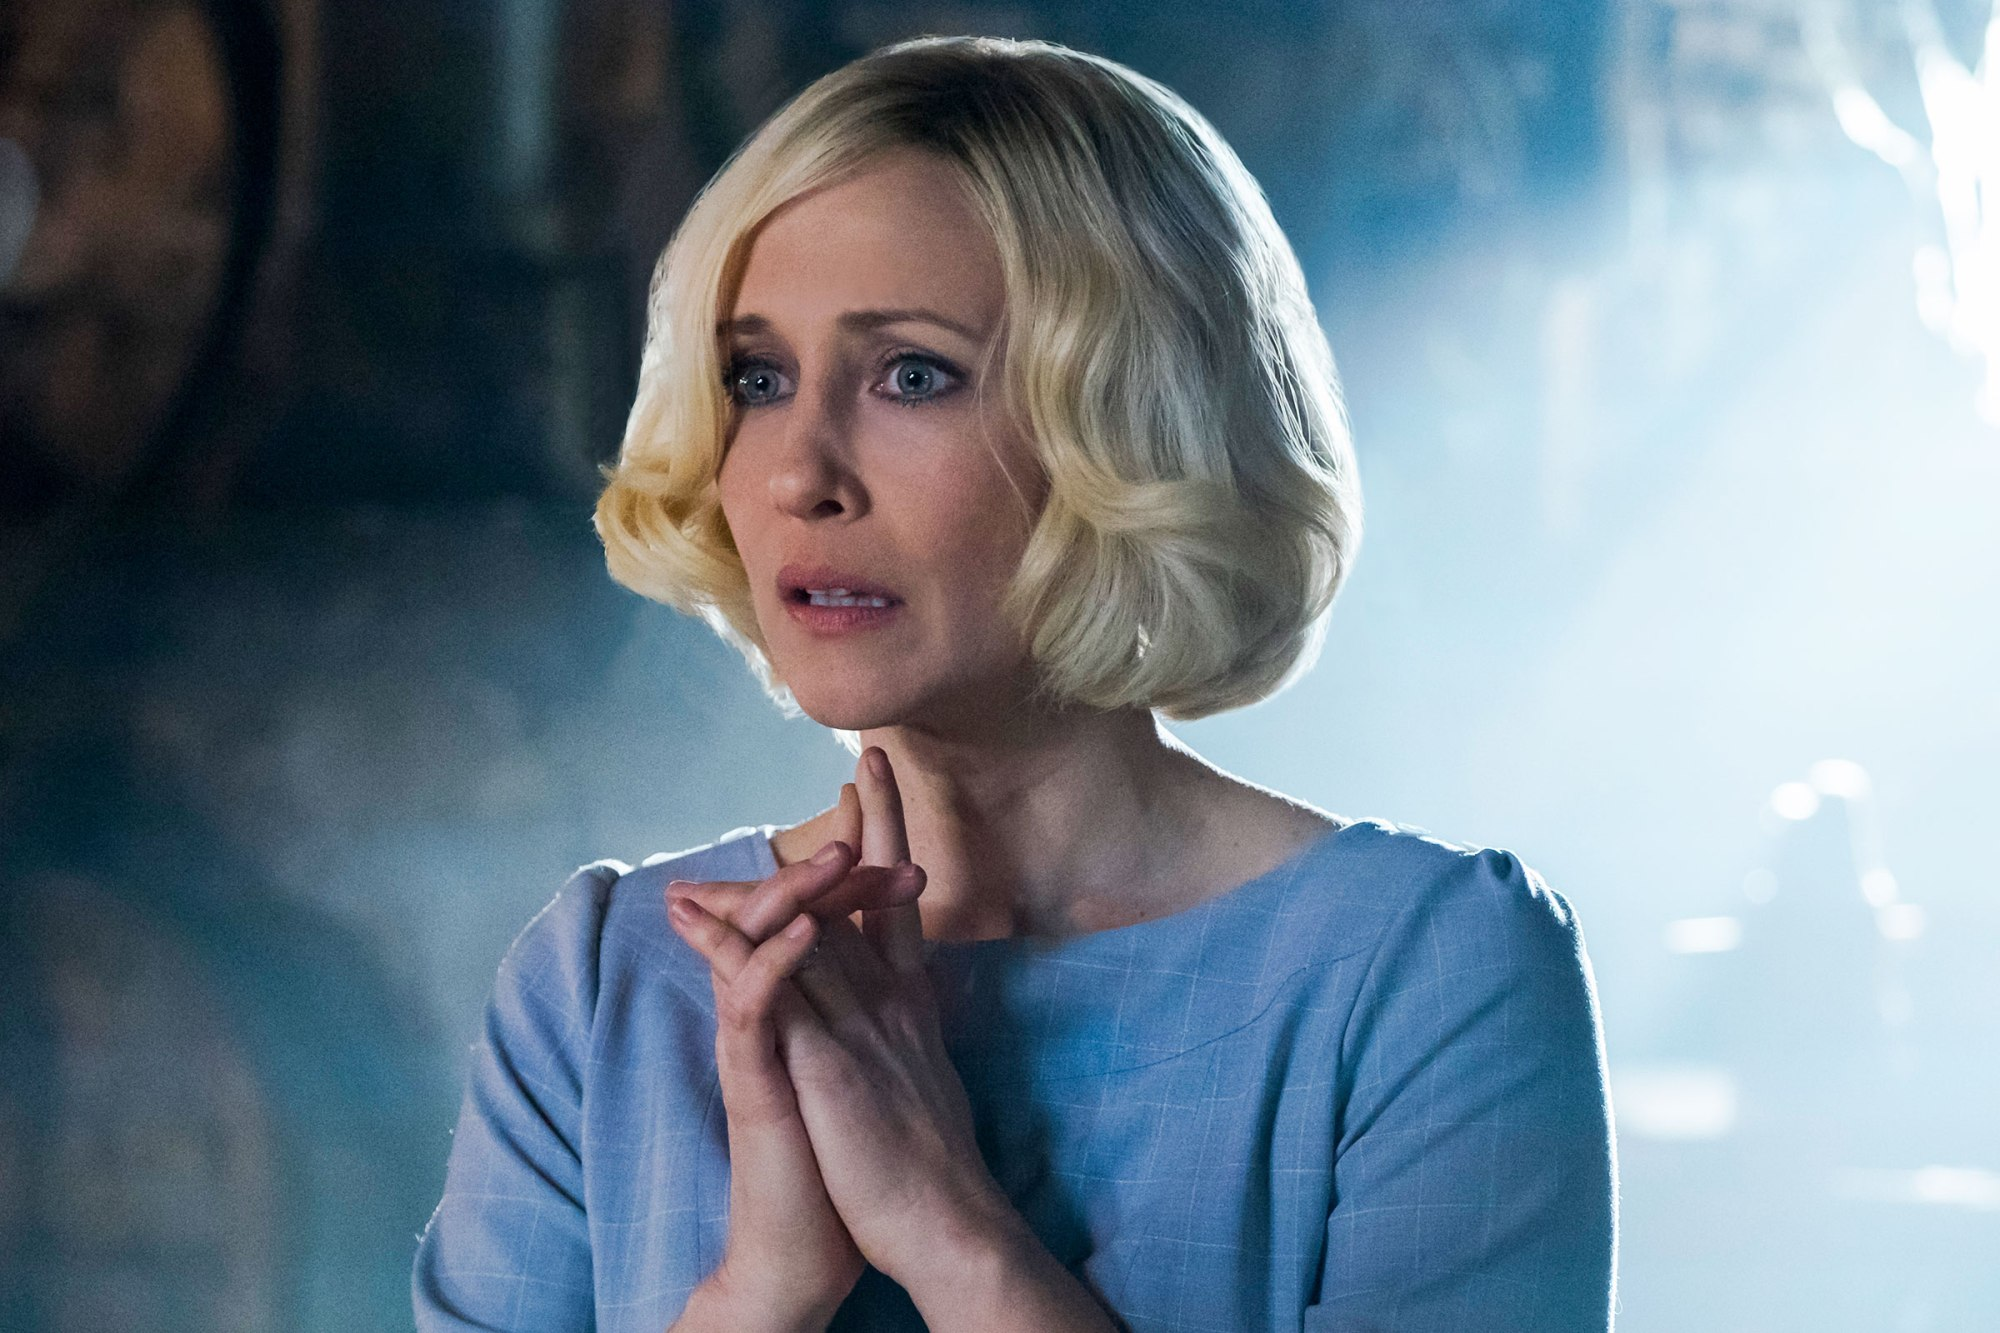 """Bates Motel -- """"There's No Place Like Home"""" -- Cate Cameron/A&E Networks -- © 2016 A&E Networks, LLC. All Rights Reserved"""